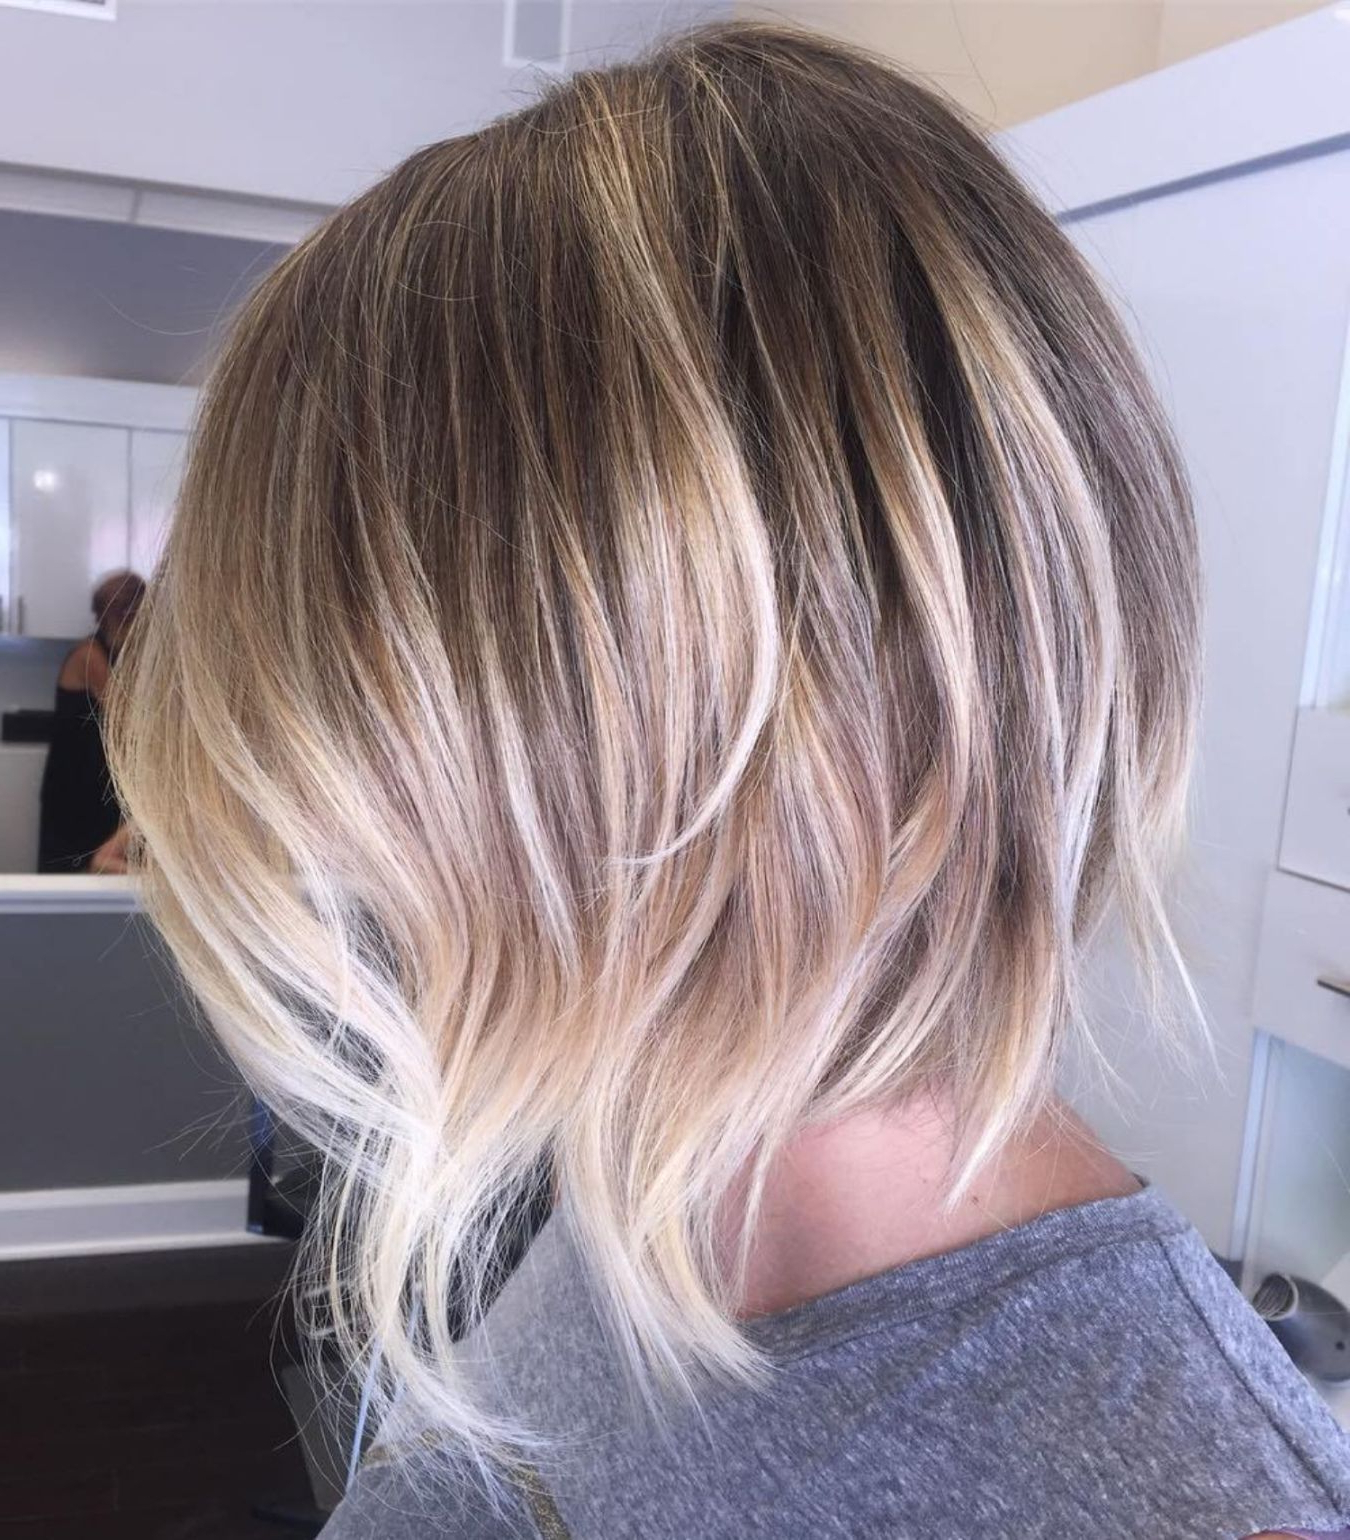 70 Winning Looks With Bob Haircuts For Fine Hair | Hair | Pinterest Within Layered Balayage Bob Hairstyles (View 12 of 20)